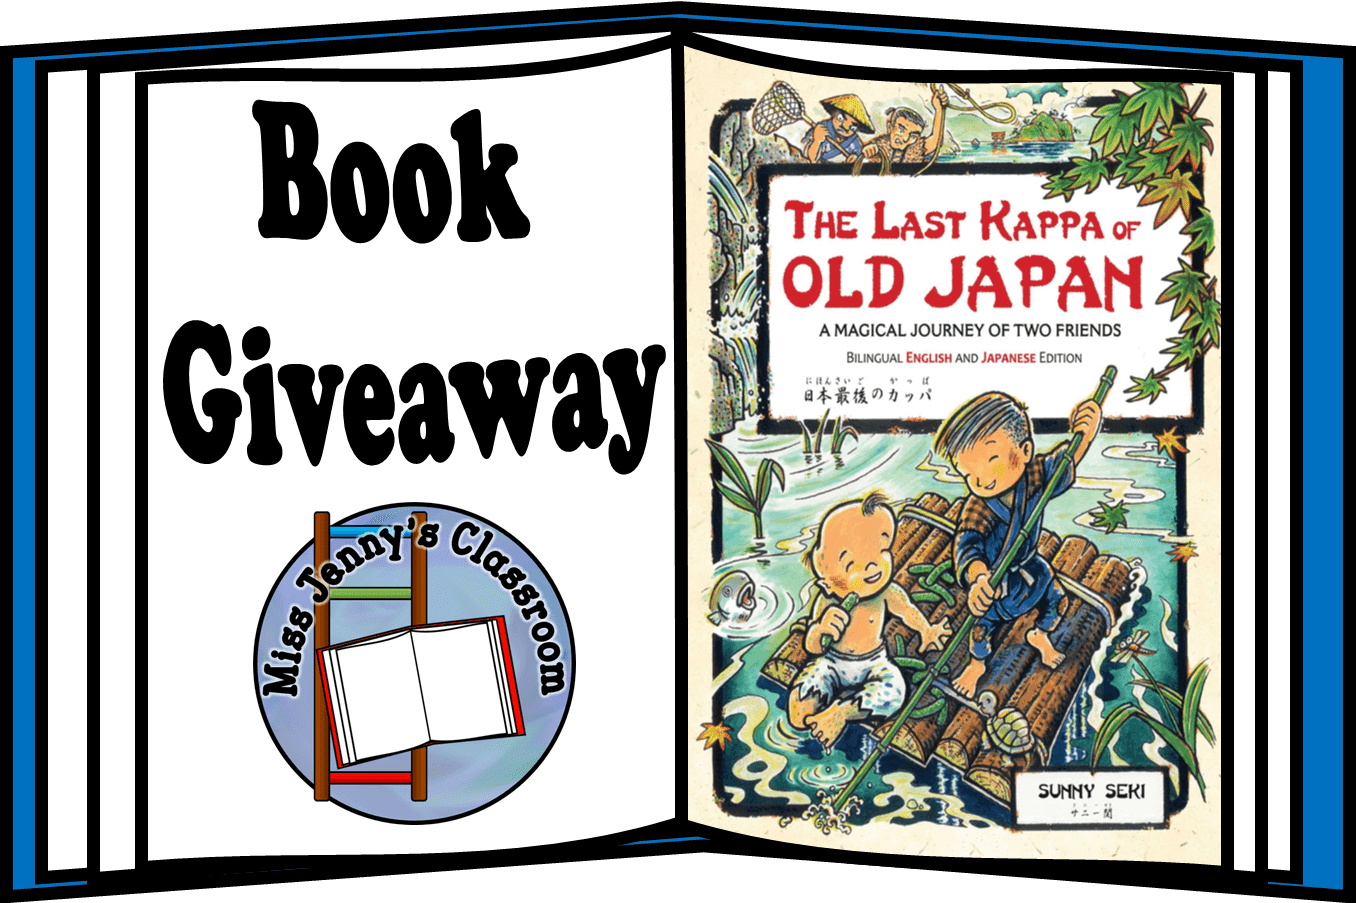 https://www.missjennysclassroom.com/2016/10/the-last-kappa-of-old-japan-giveaway.html